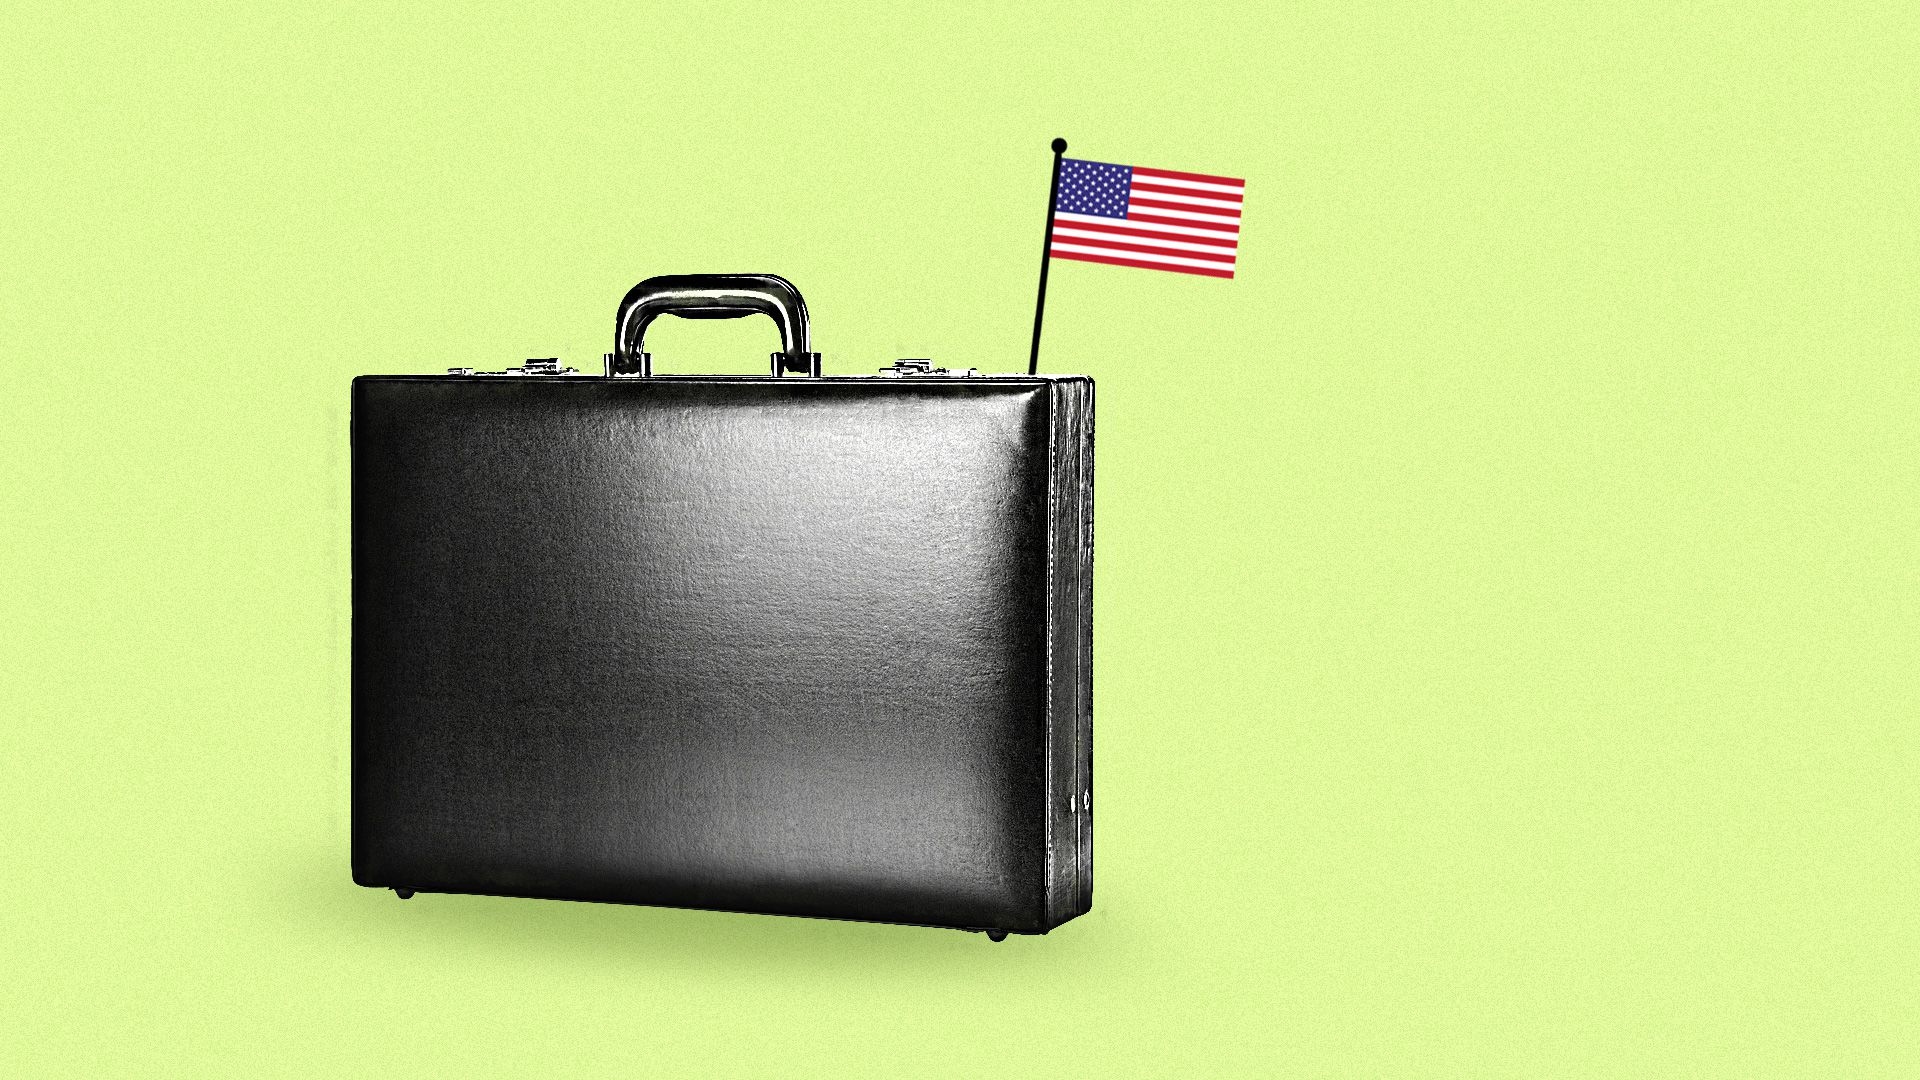 An American Flag planted on a briefcase